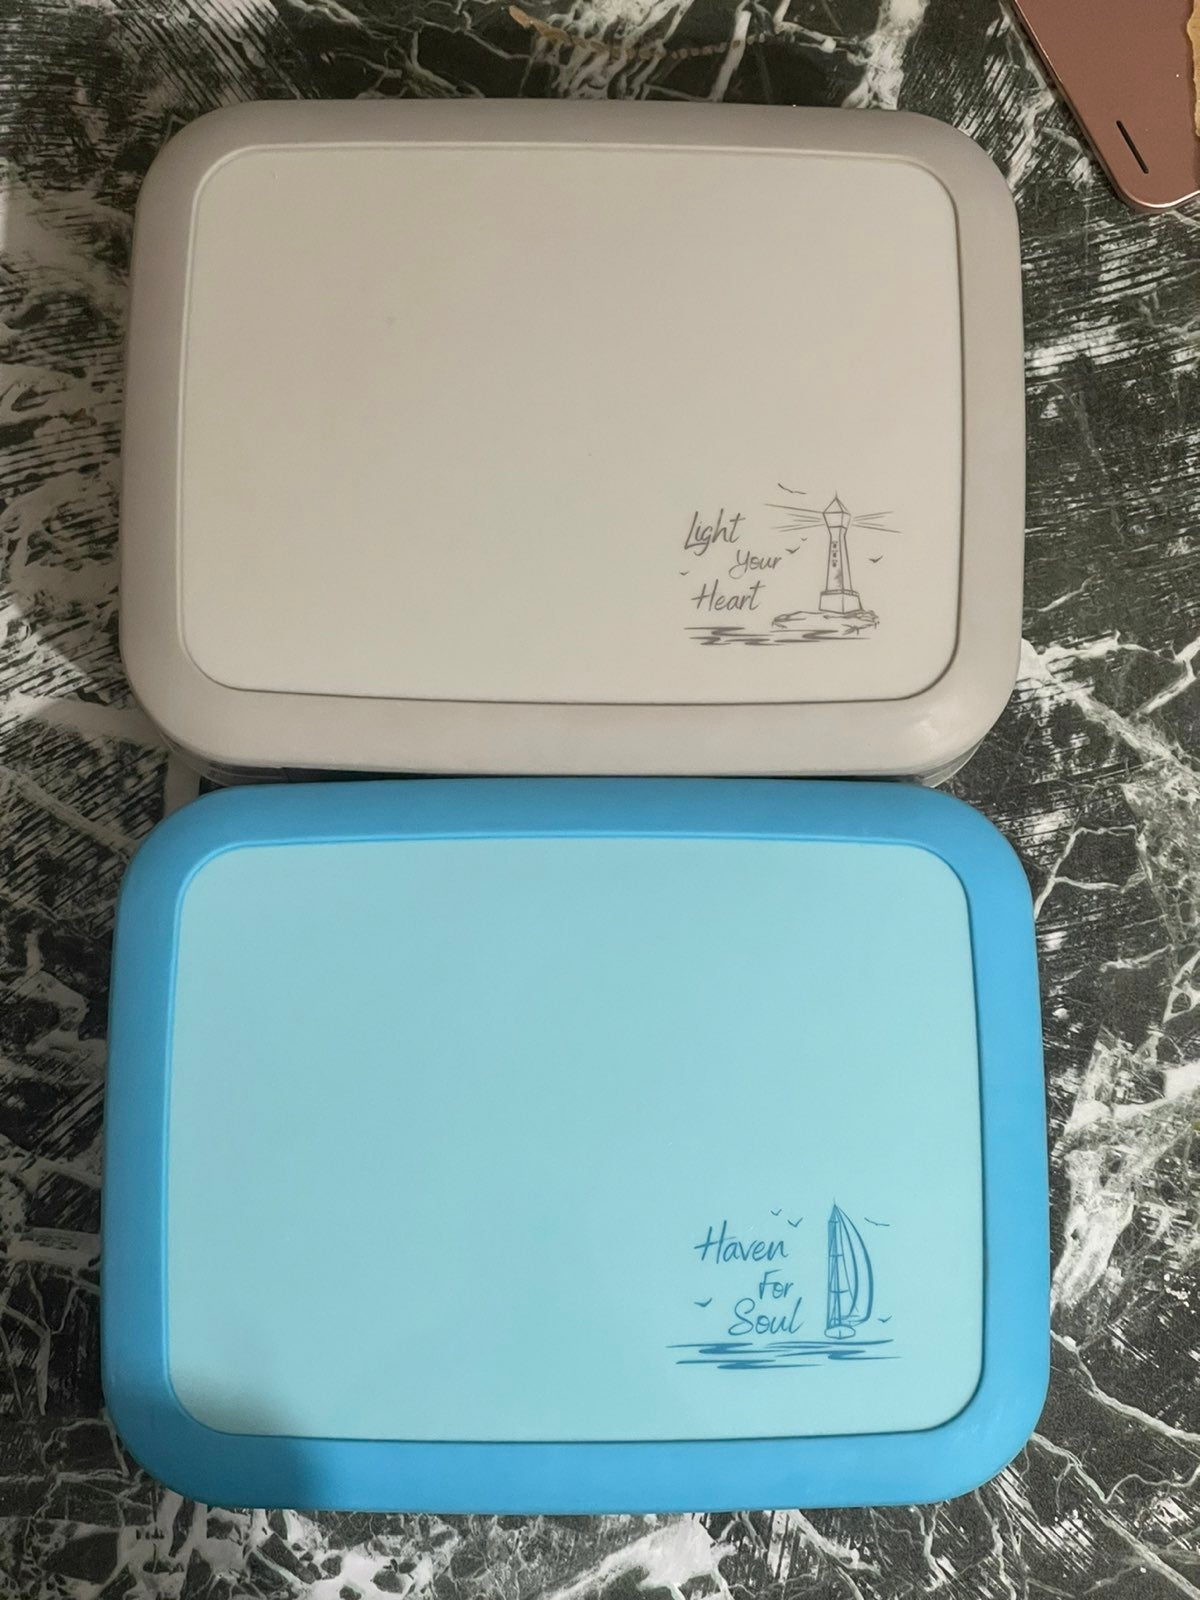 Kids lunch box(2 box)Grey and blue color